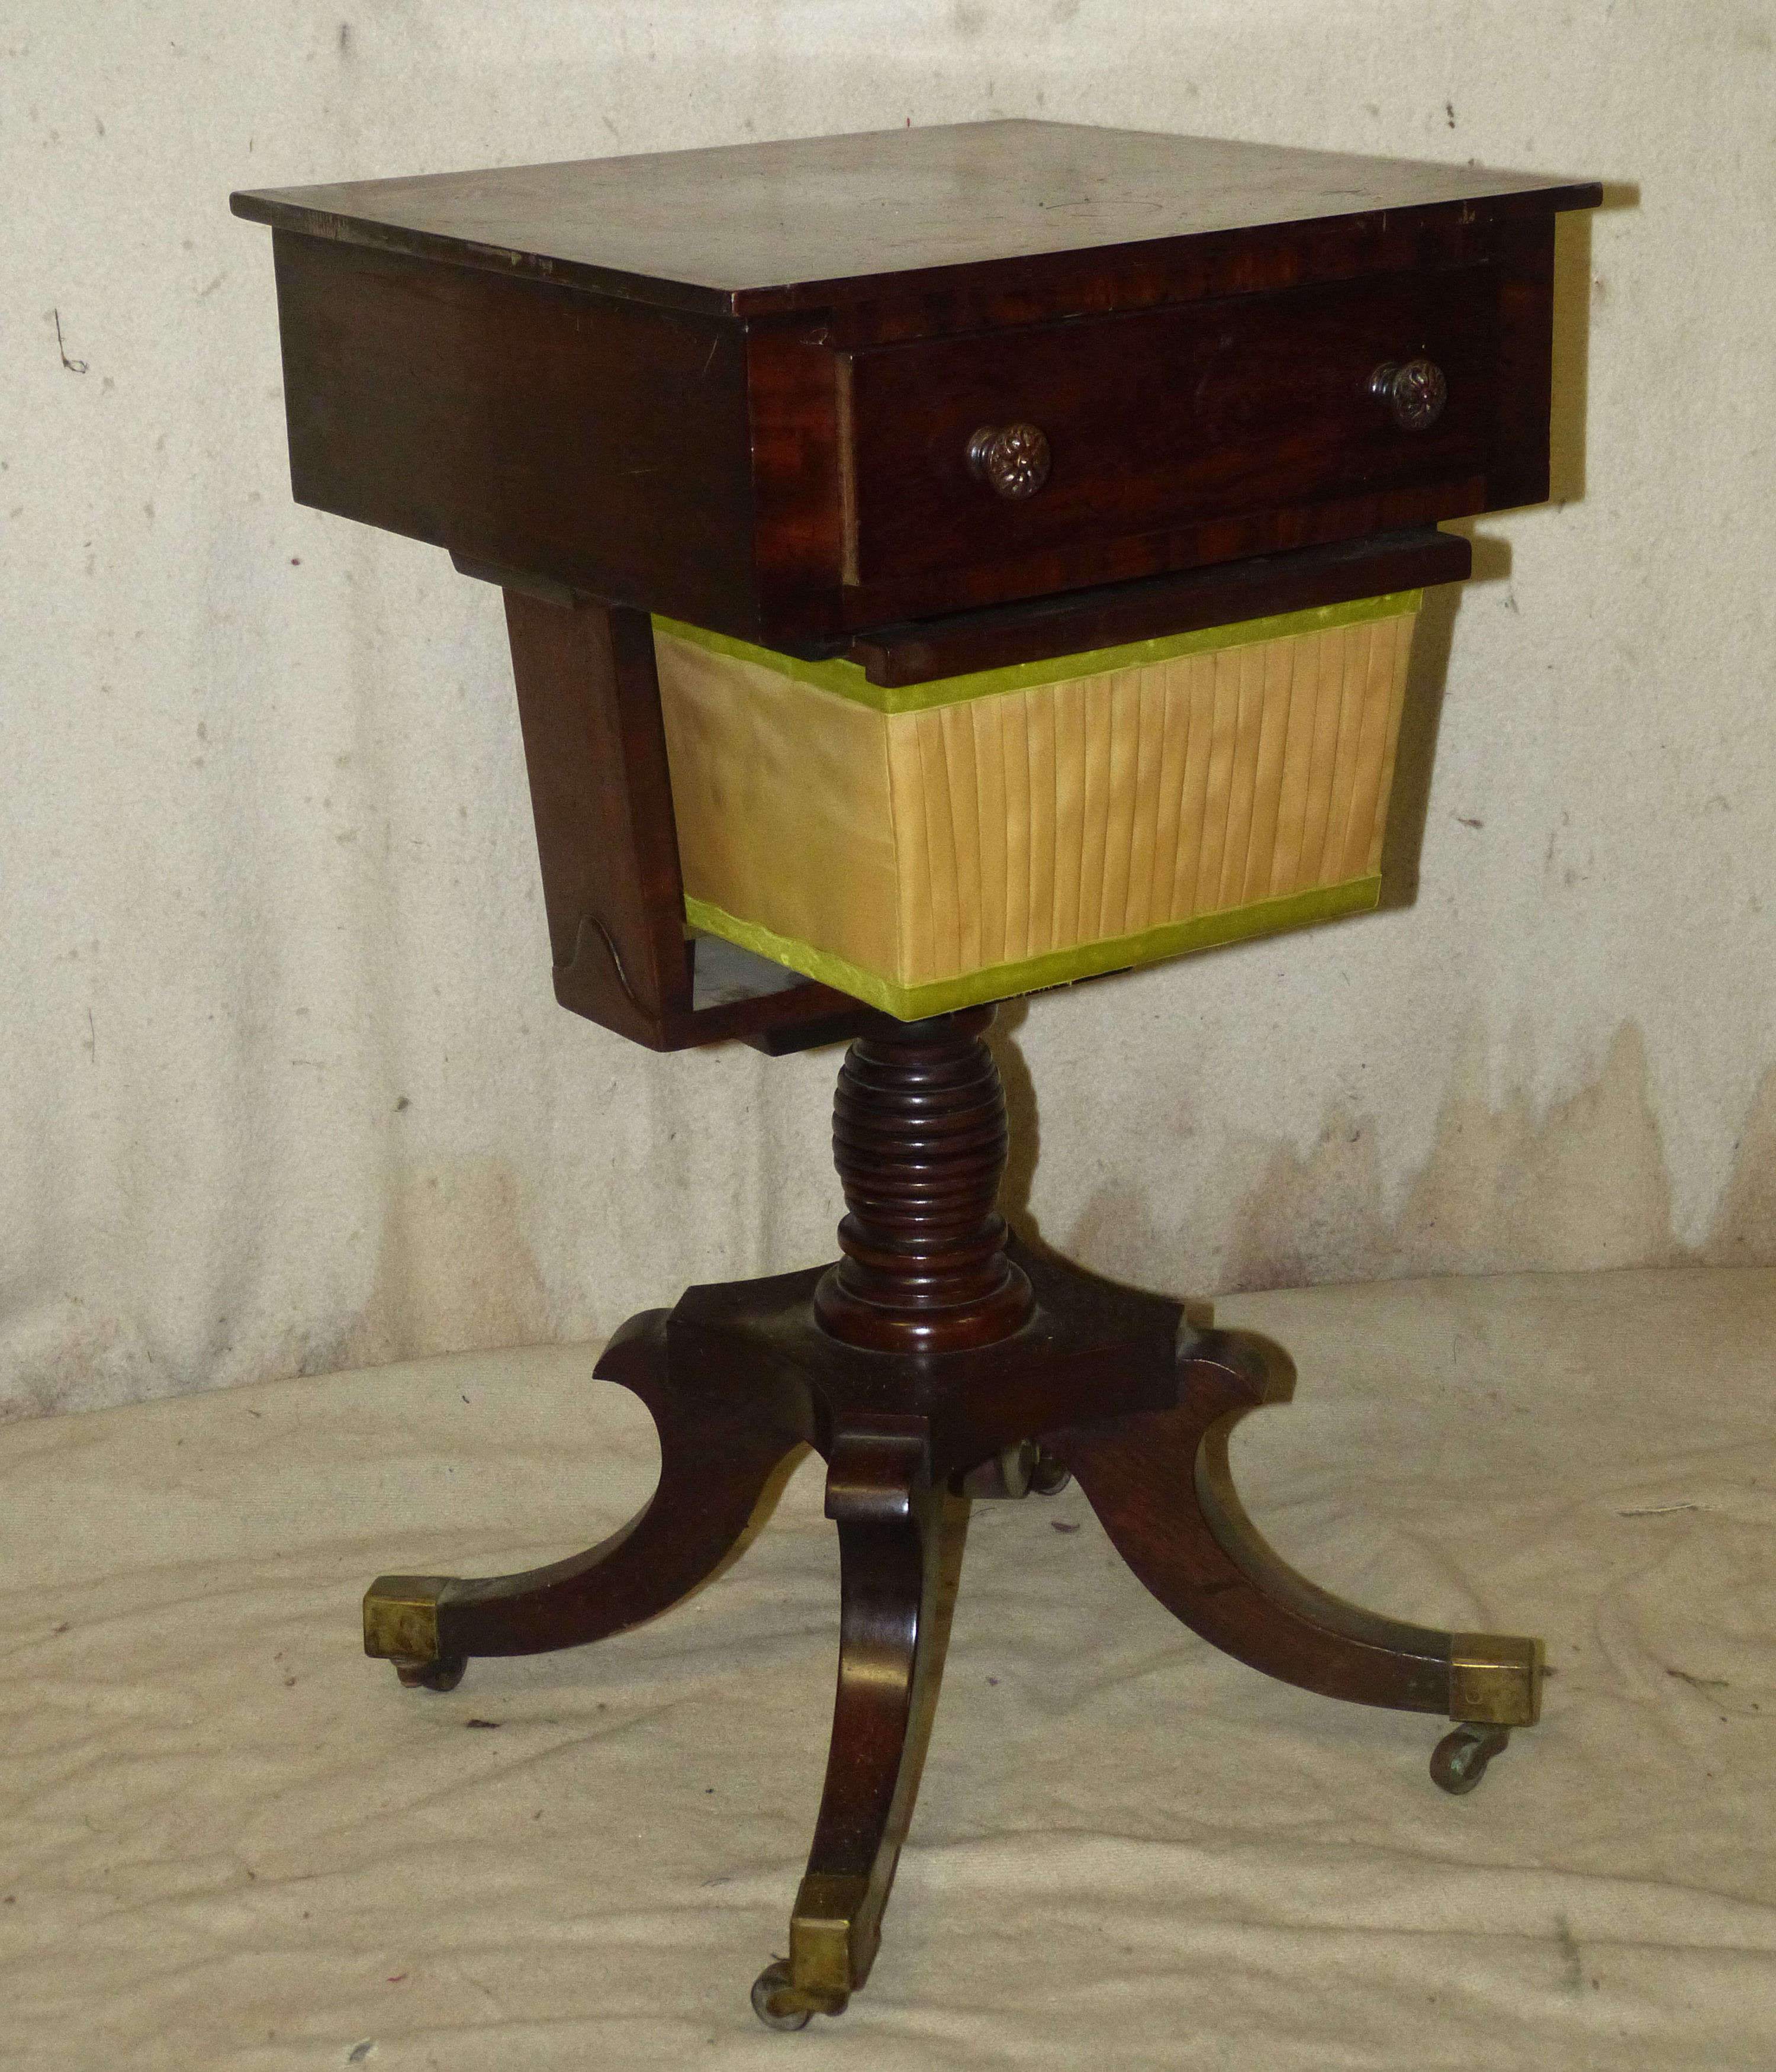 A 19th Century Mahogany Square Work Table having inlaid banding and stringing